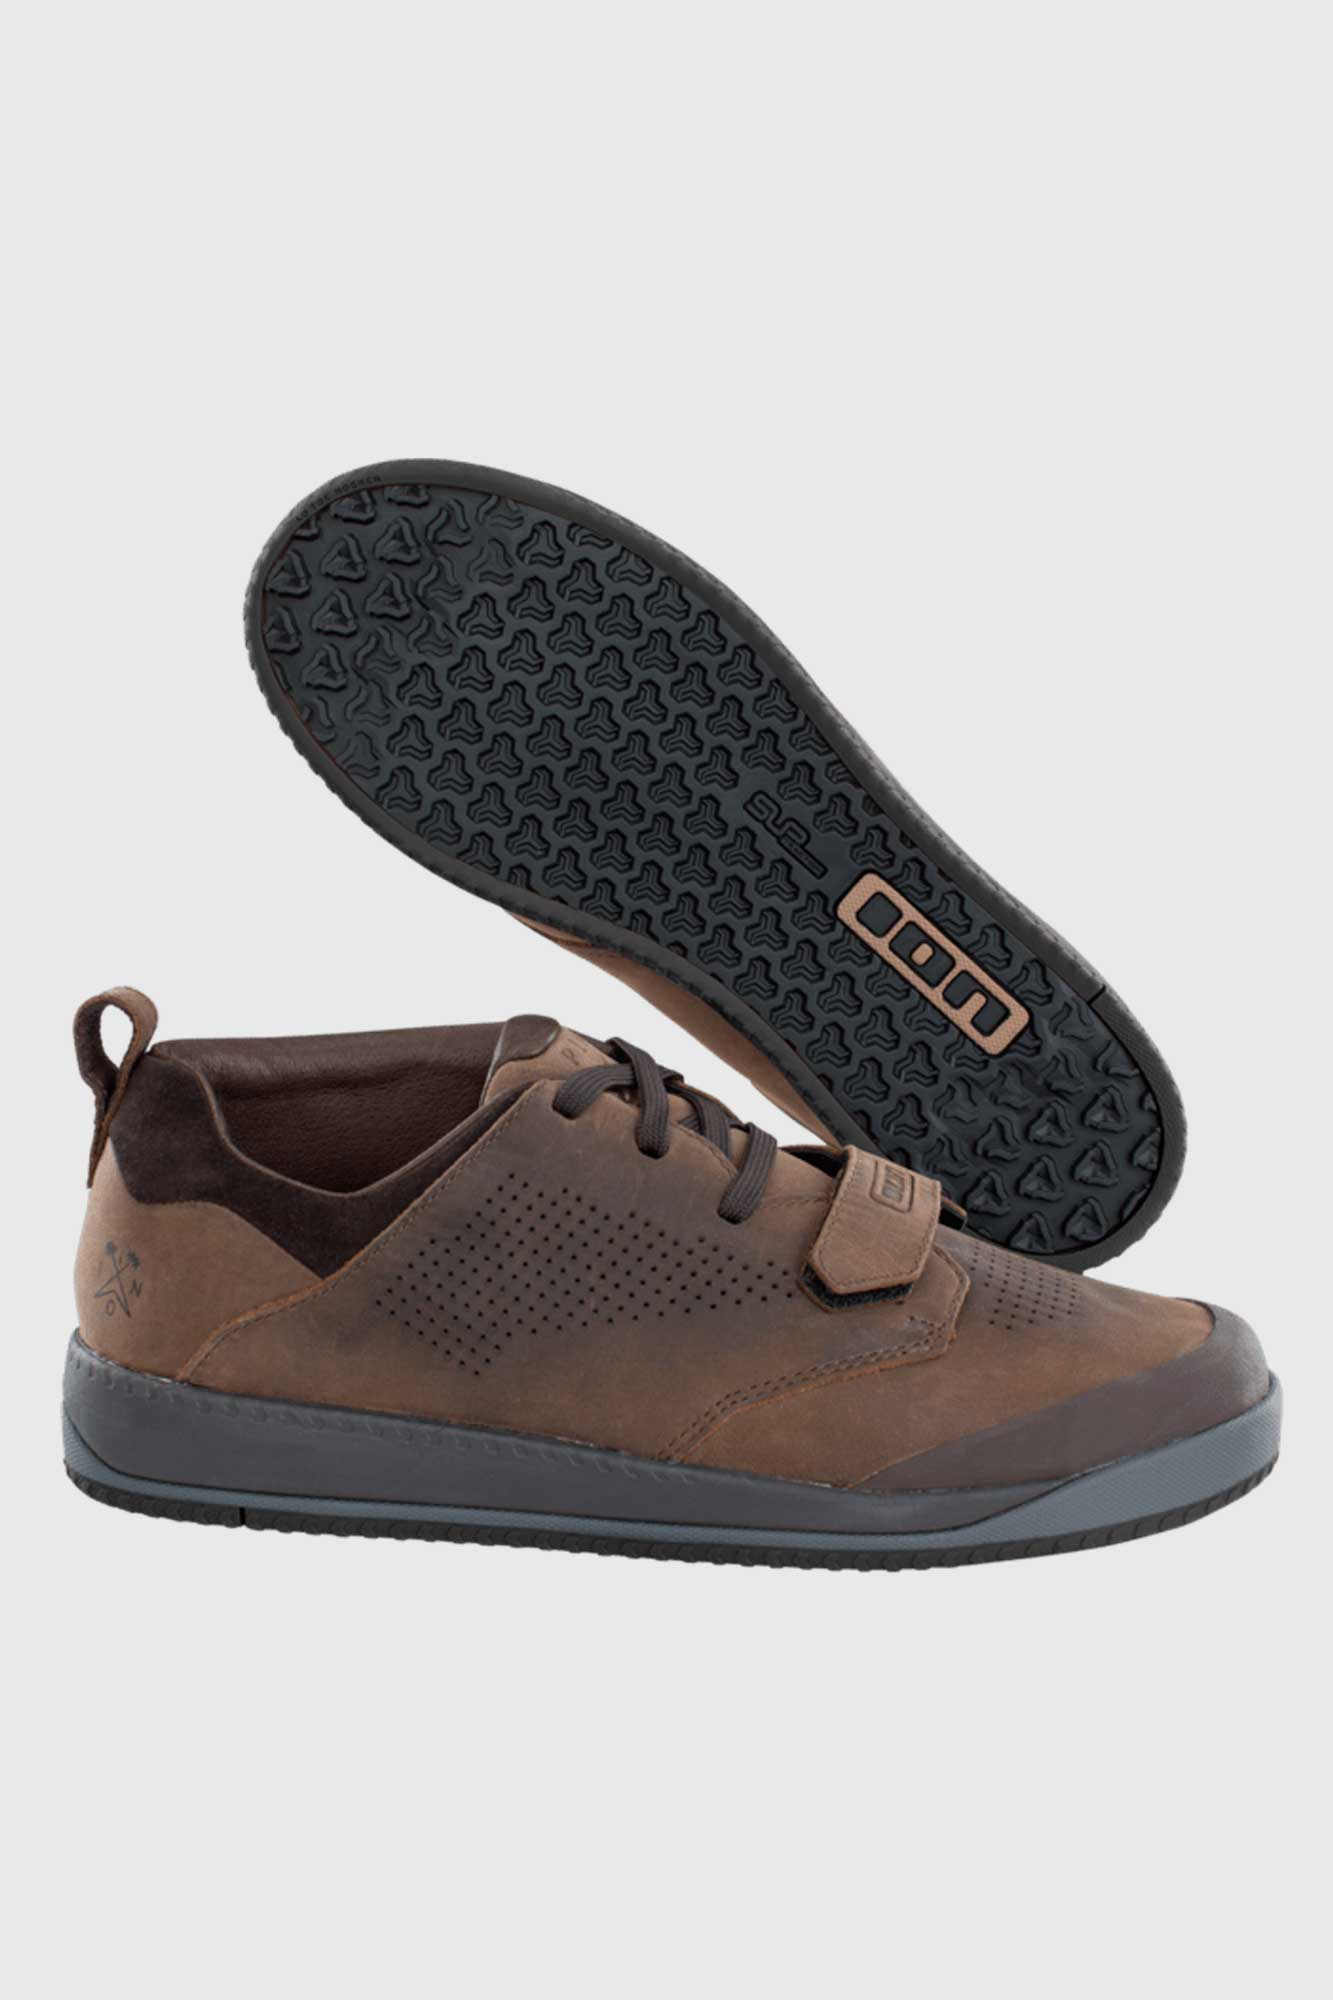 ION Scrub Select Shoe - Loam Brown